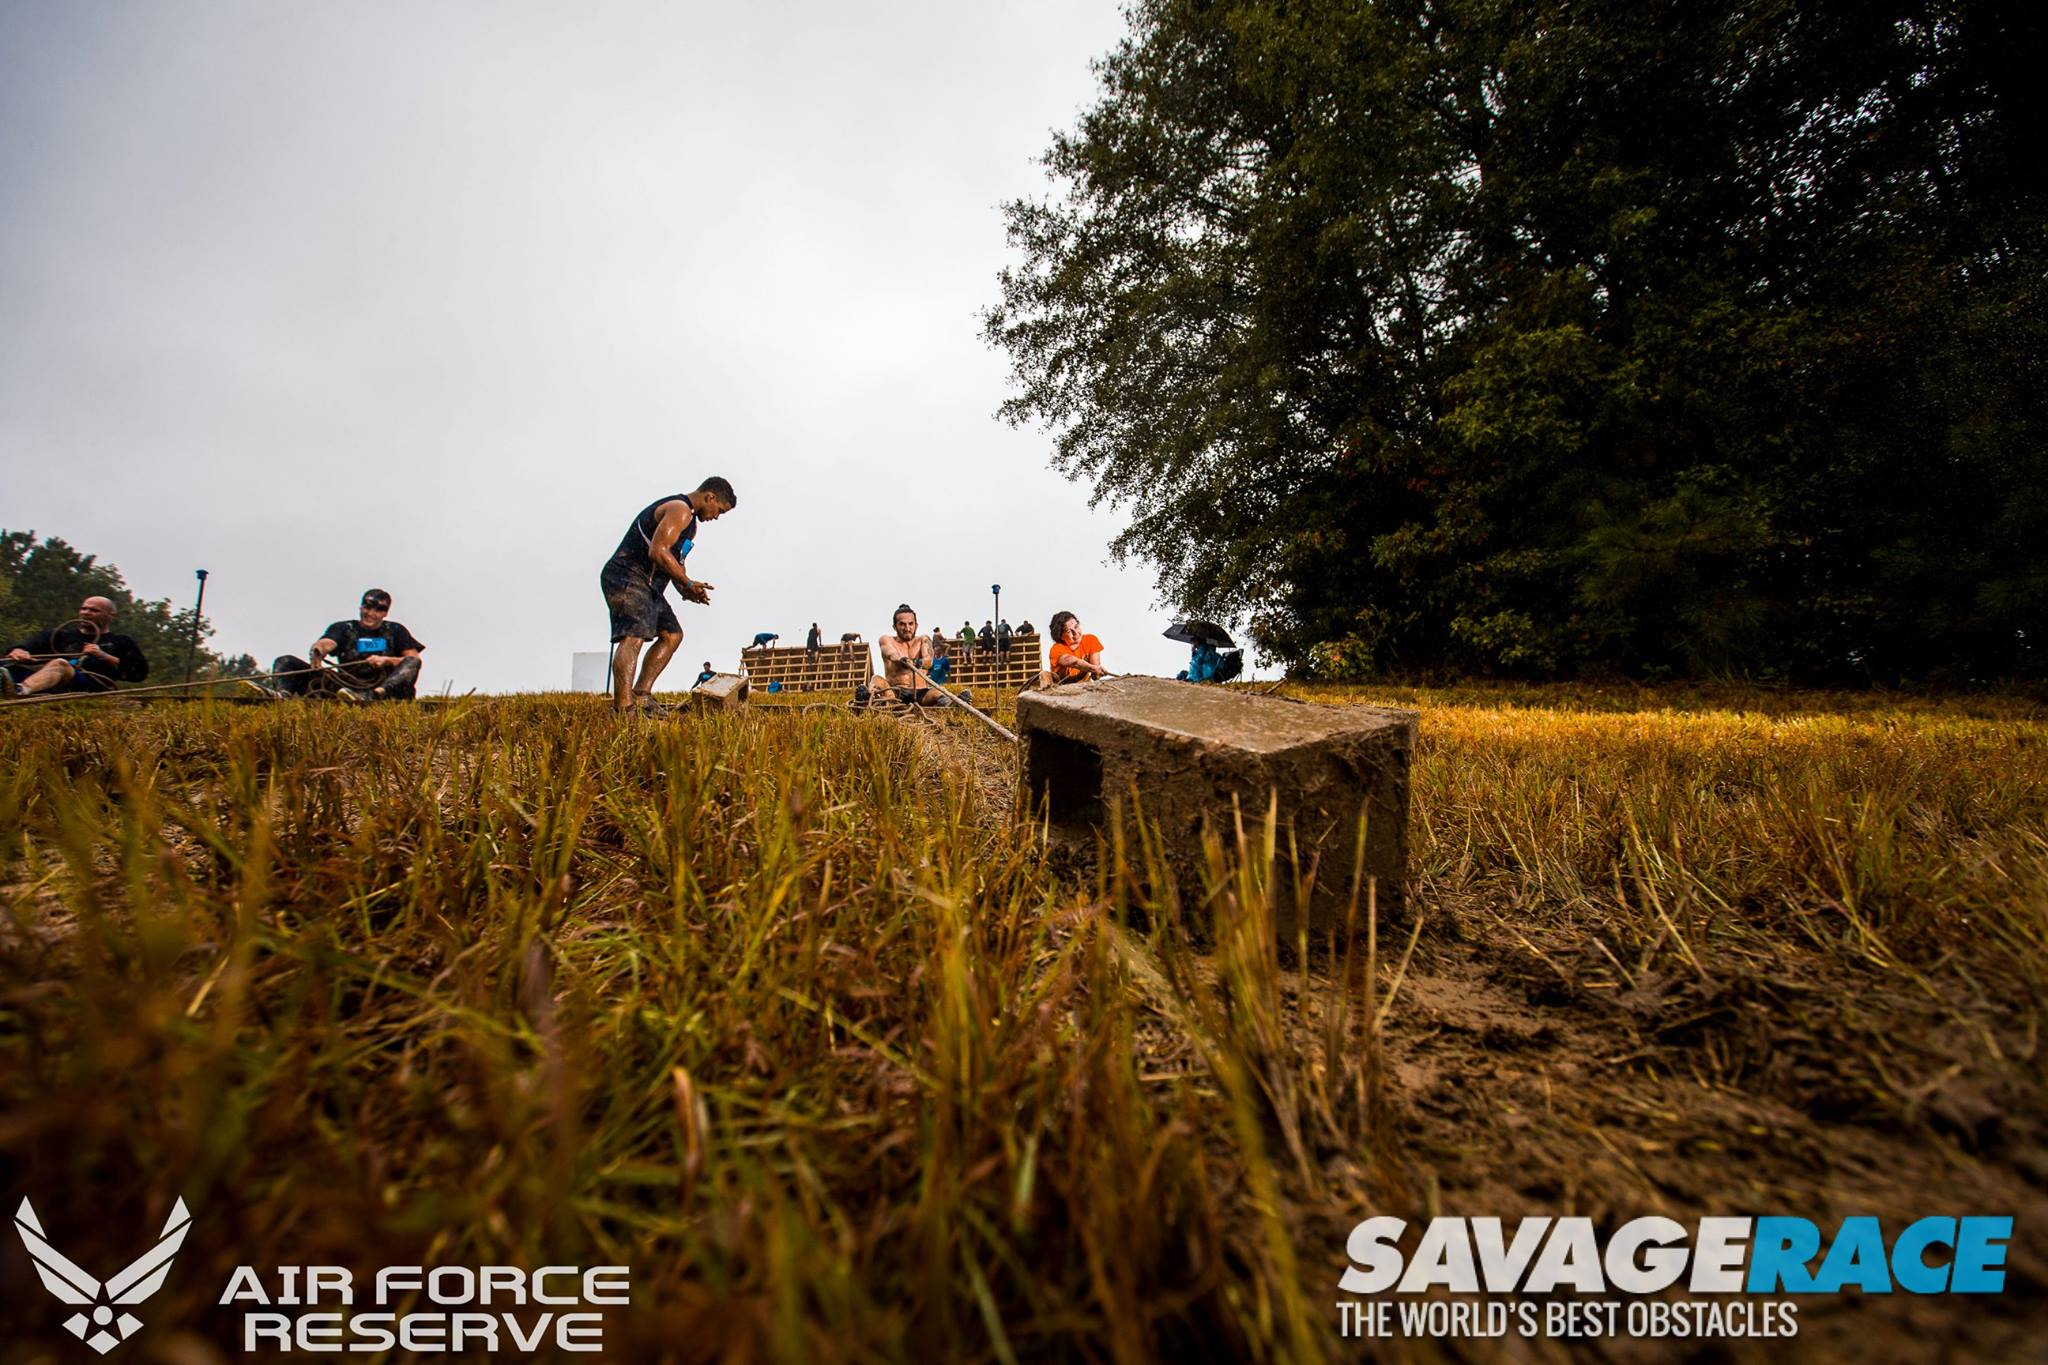 Savage Race block party